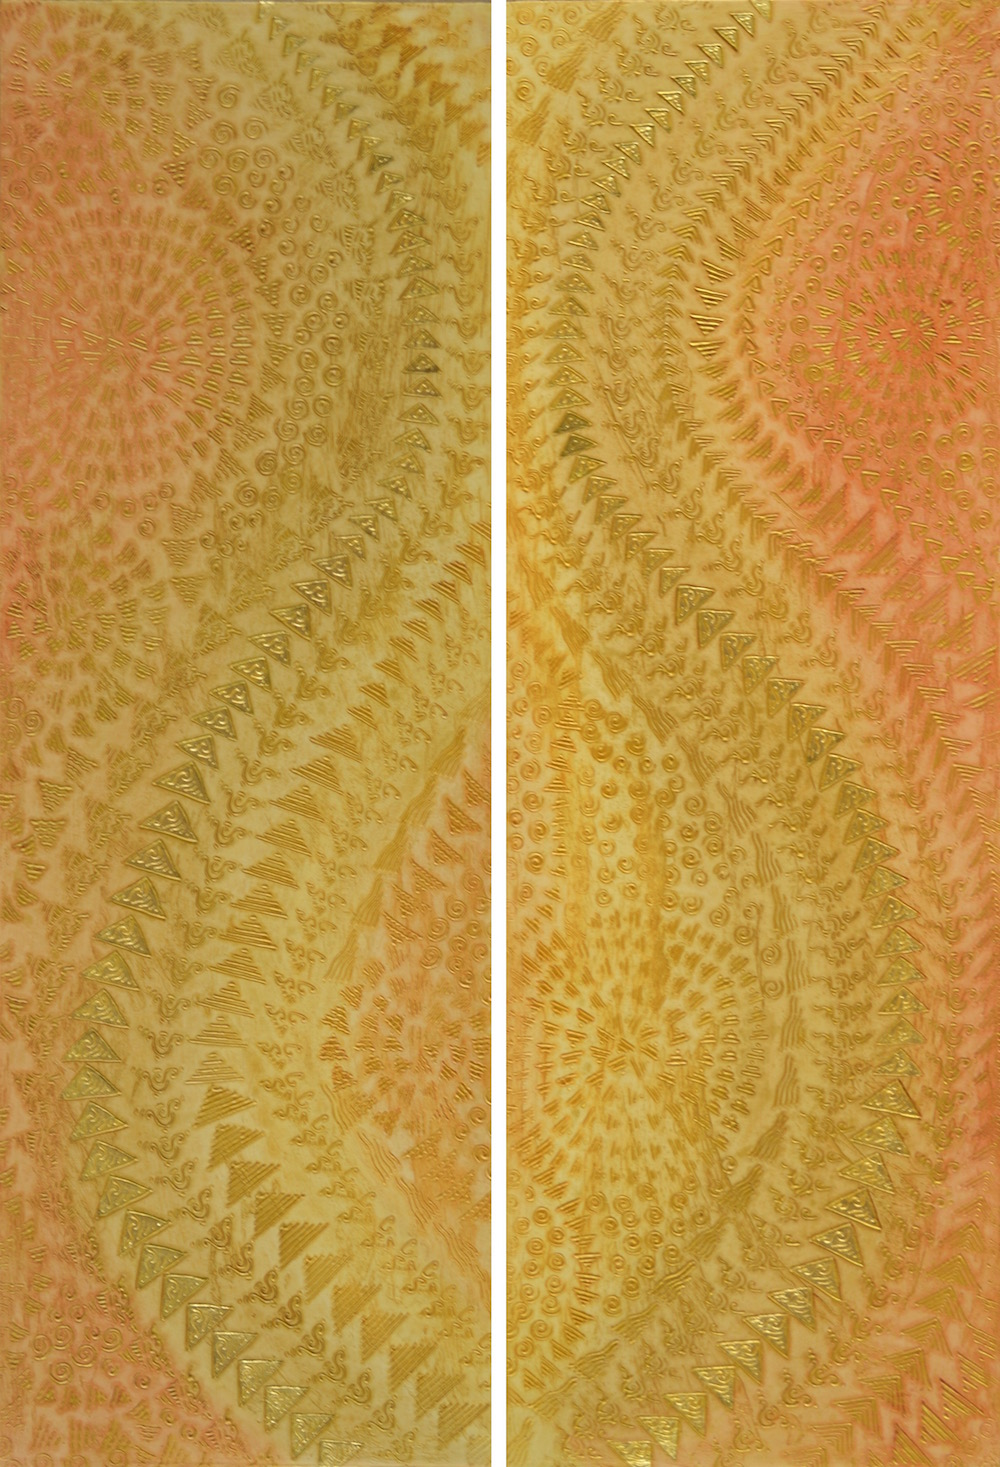 "The final paintings, a diptych, Blessings of a Golden Rose 1 & 2 @ 17"" W x 50"" H x 2"" D for a 'his & her' master bathroom in a Four Seasons Hualalai residence on the Big Island of Hawai'i. Each painting was installed on opposite sides of the bathroom but from the entry and in the huge mirrors over the sinks it was possible to see both paintings at the same time and so the textures had to work together to move in a complimentary pattern."